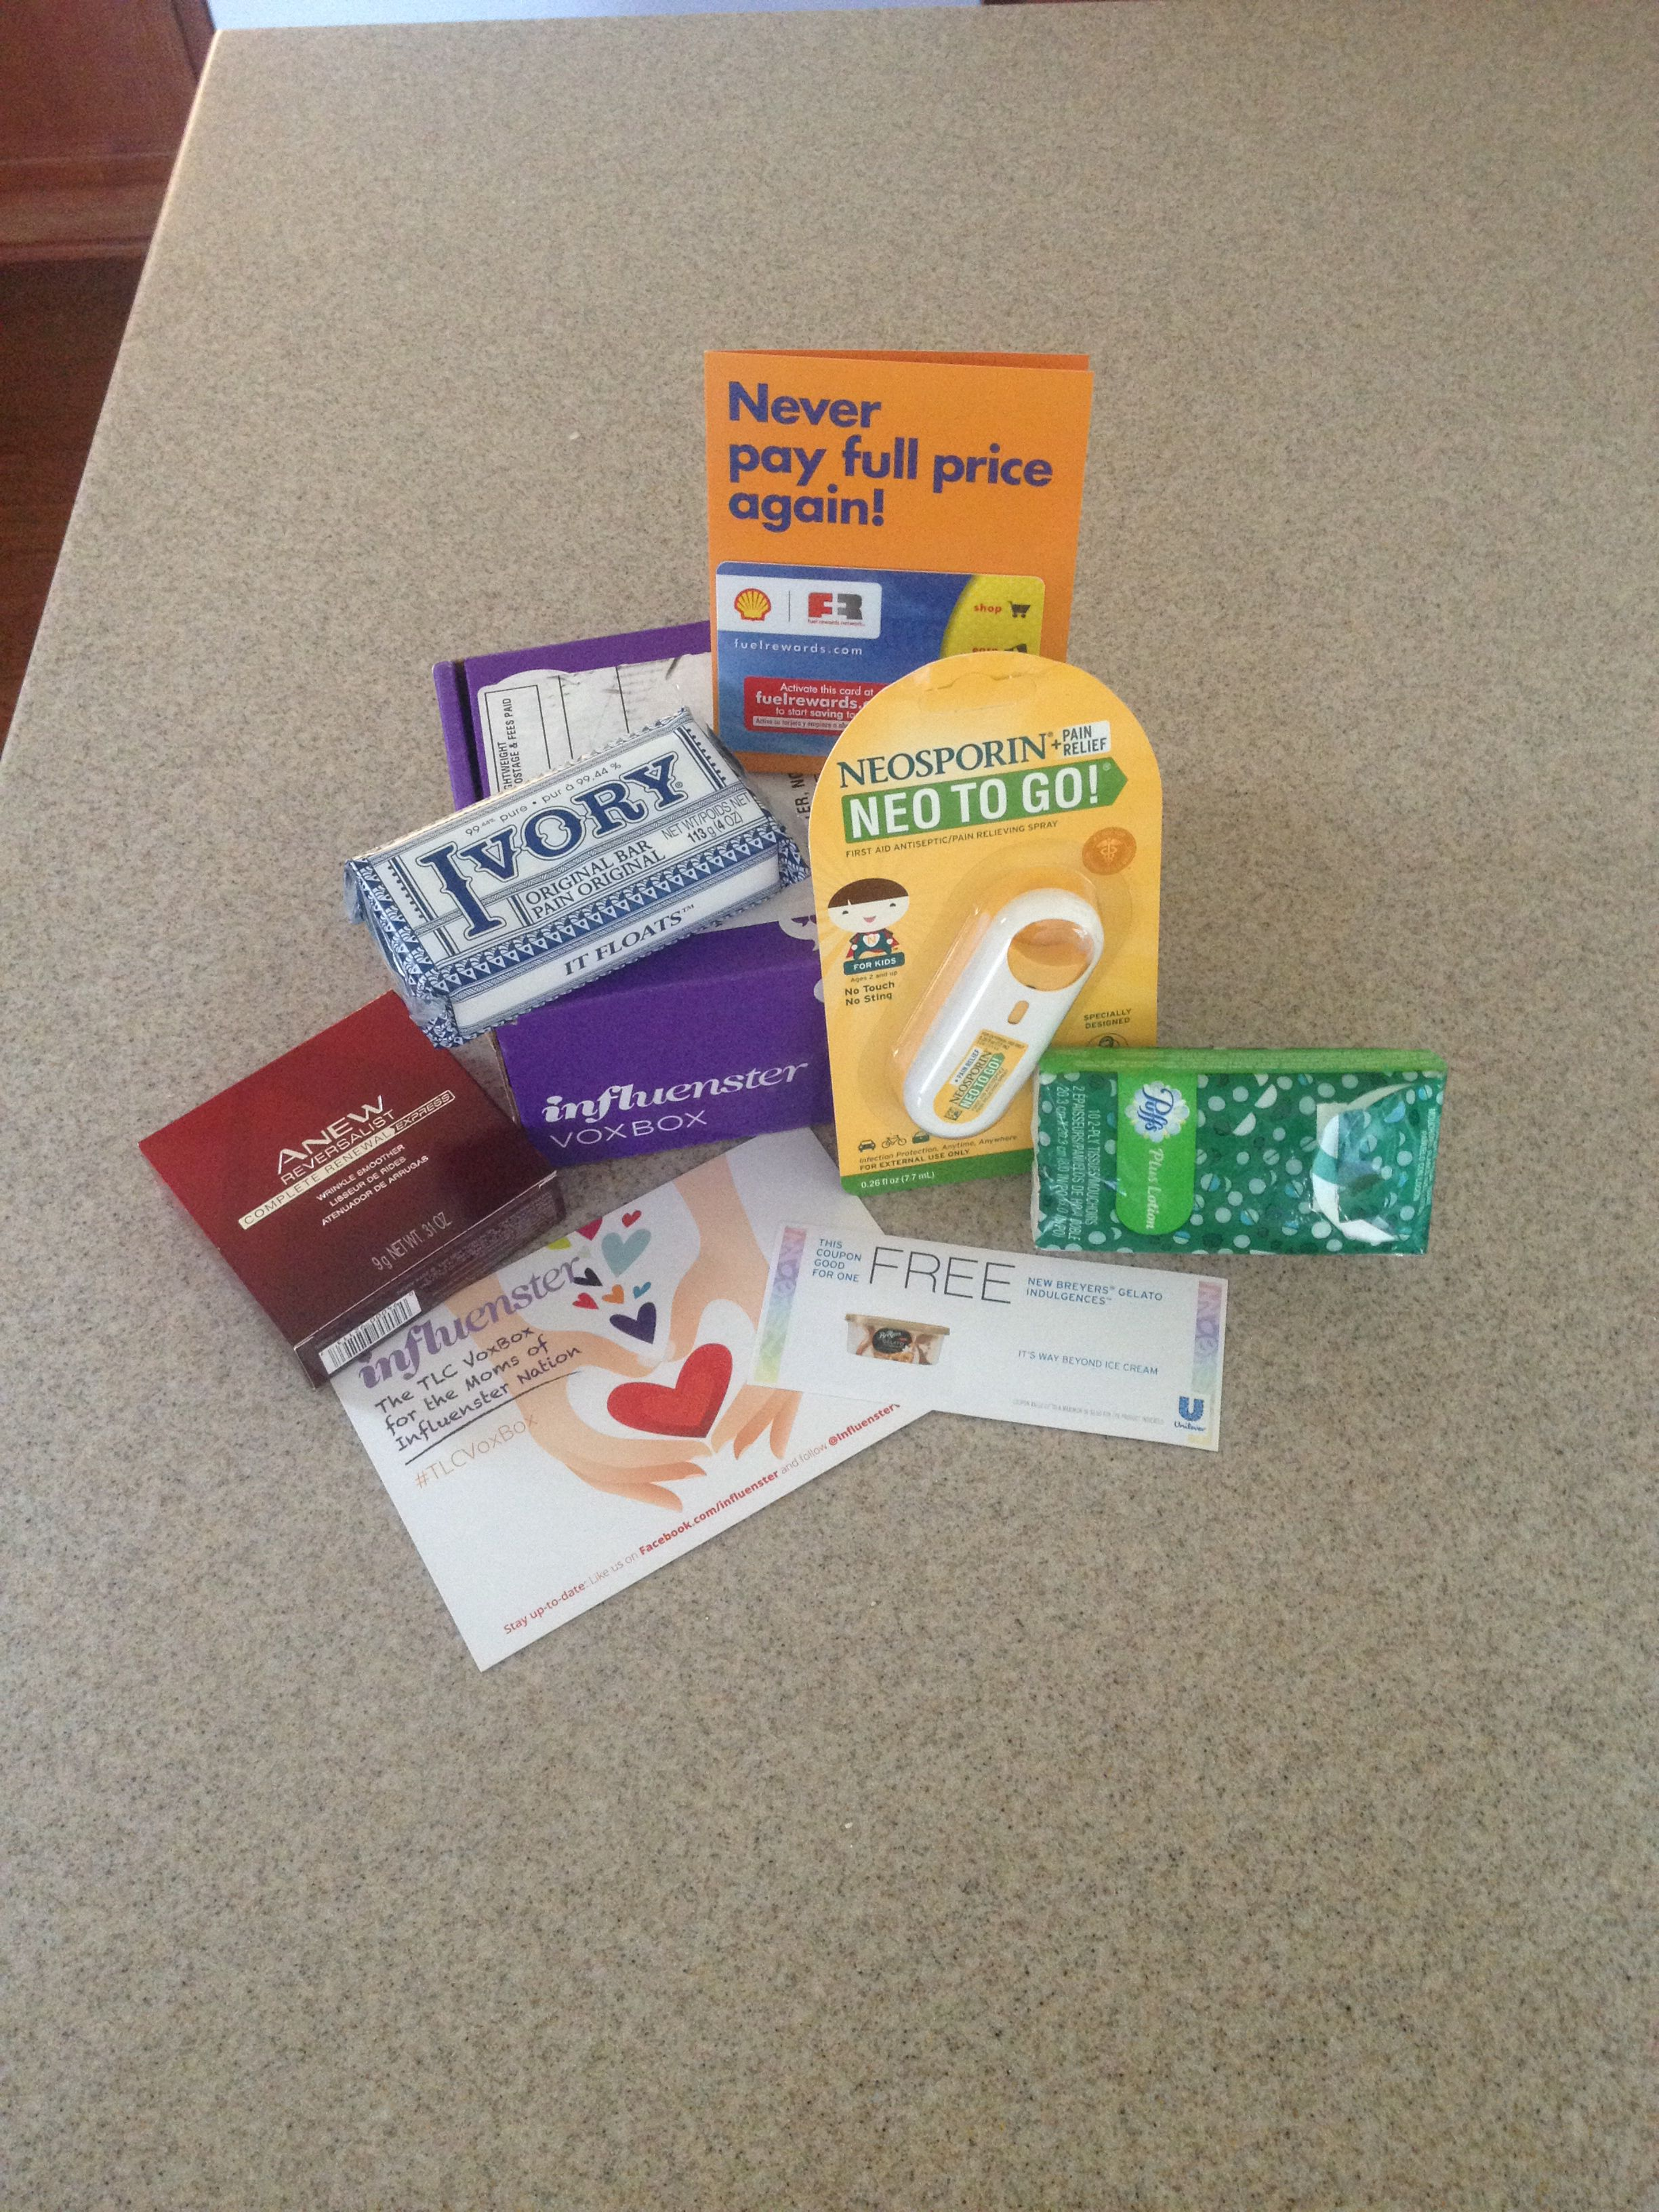 #TLCVoxBox #Influenster #MomBox Great products!